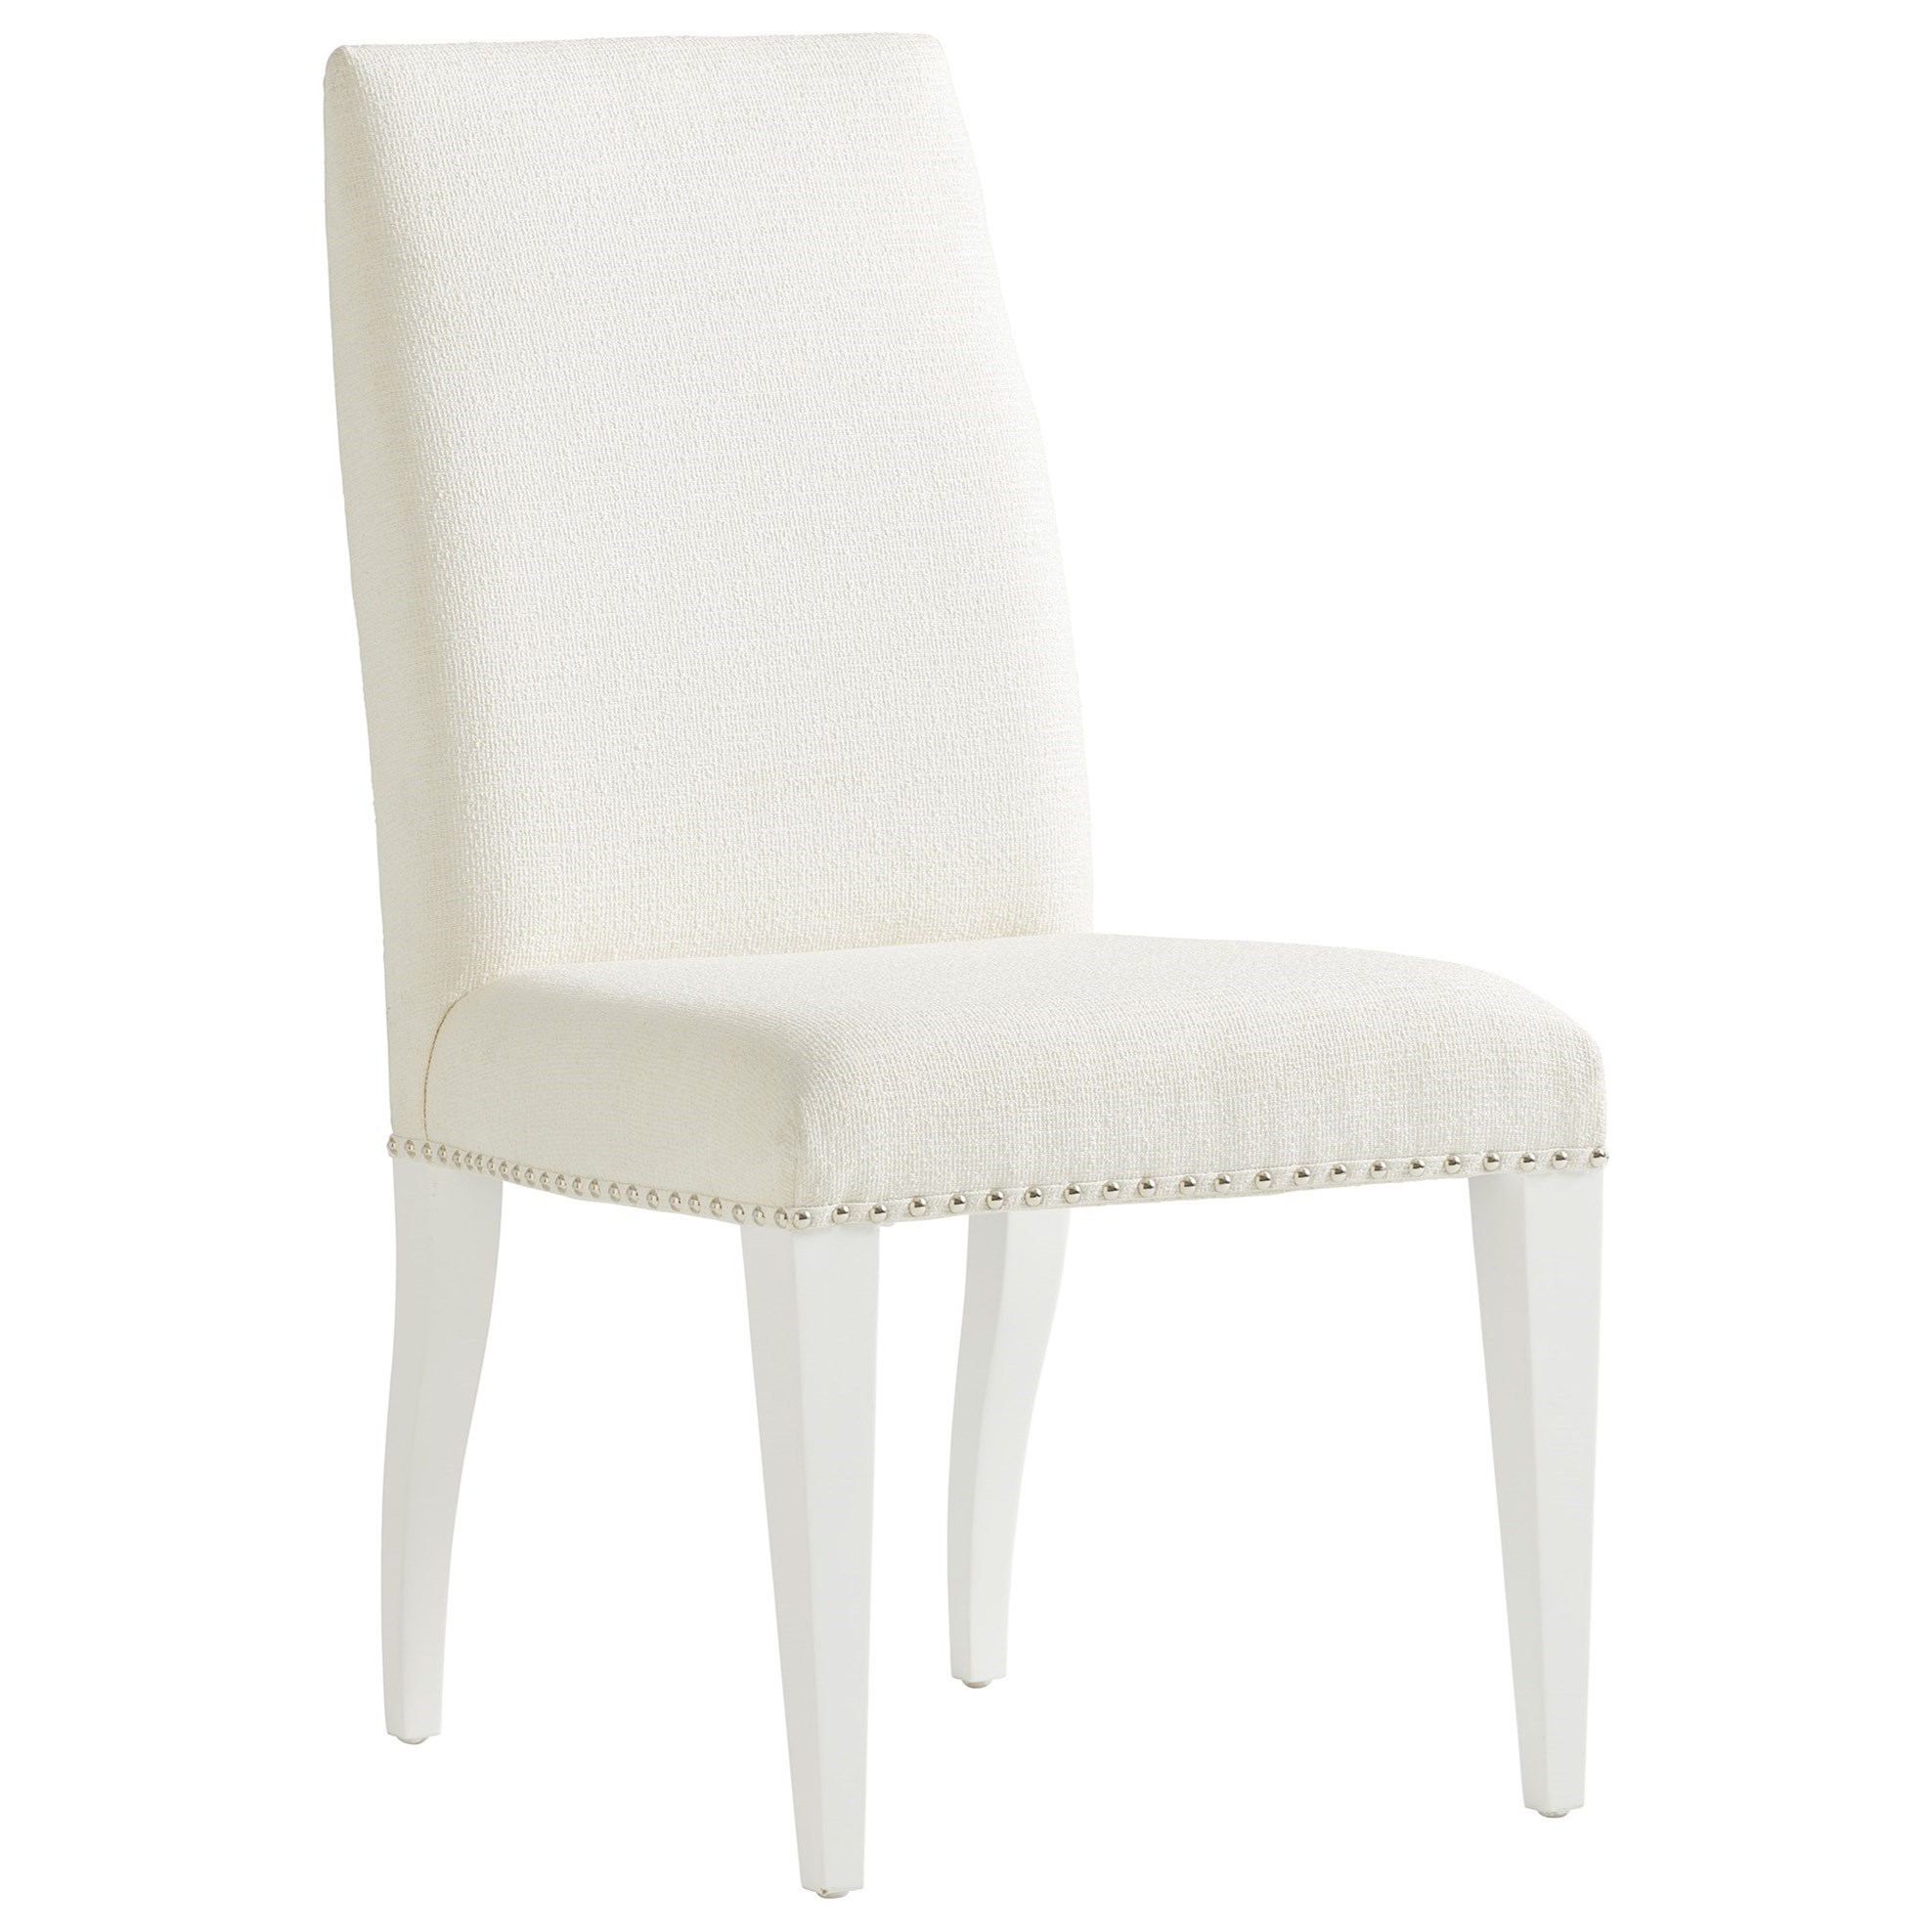 Avondale Darien Upholstered Side Chair by Lexington at Johnny Janosik